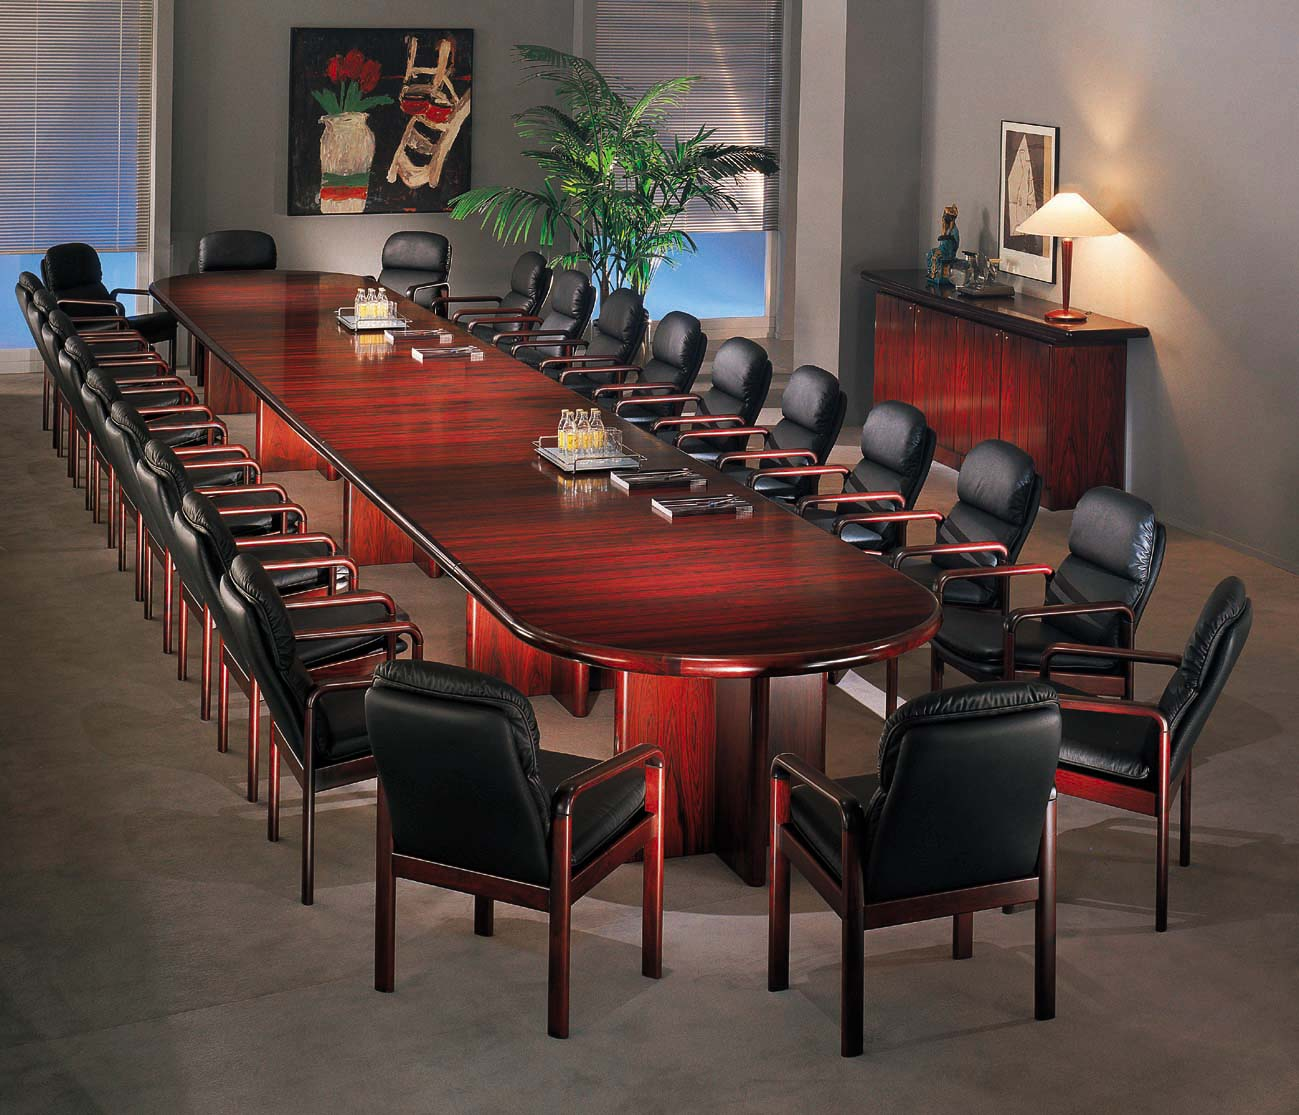 prweb 4 person kitchen table the universal tables available from the round 4 person size up to 24 persons